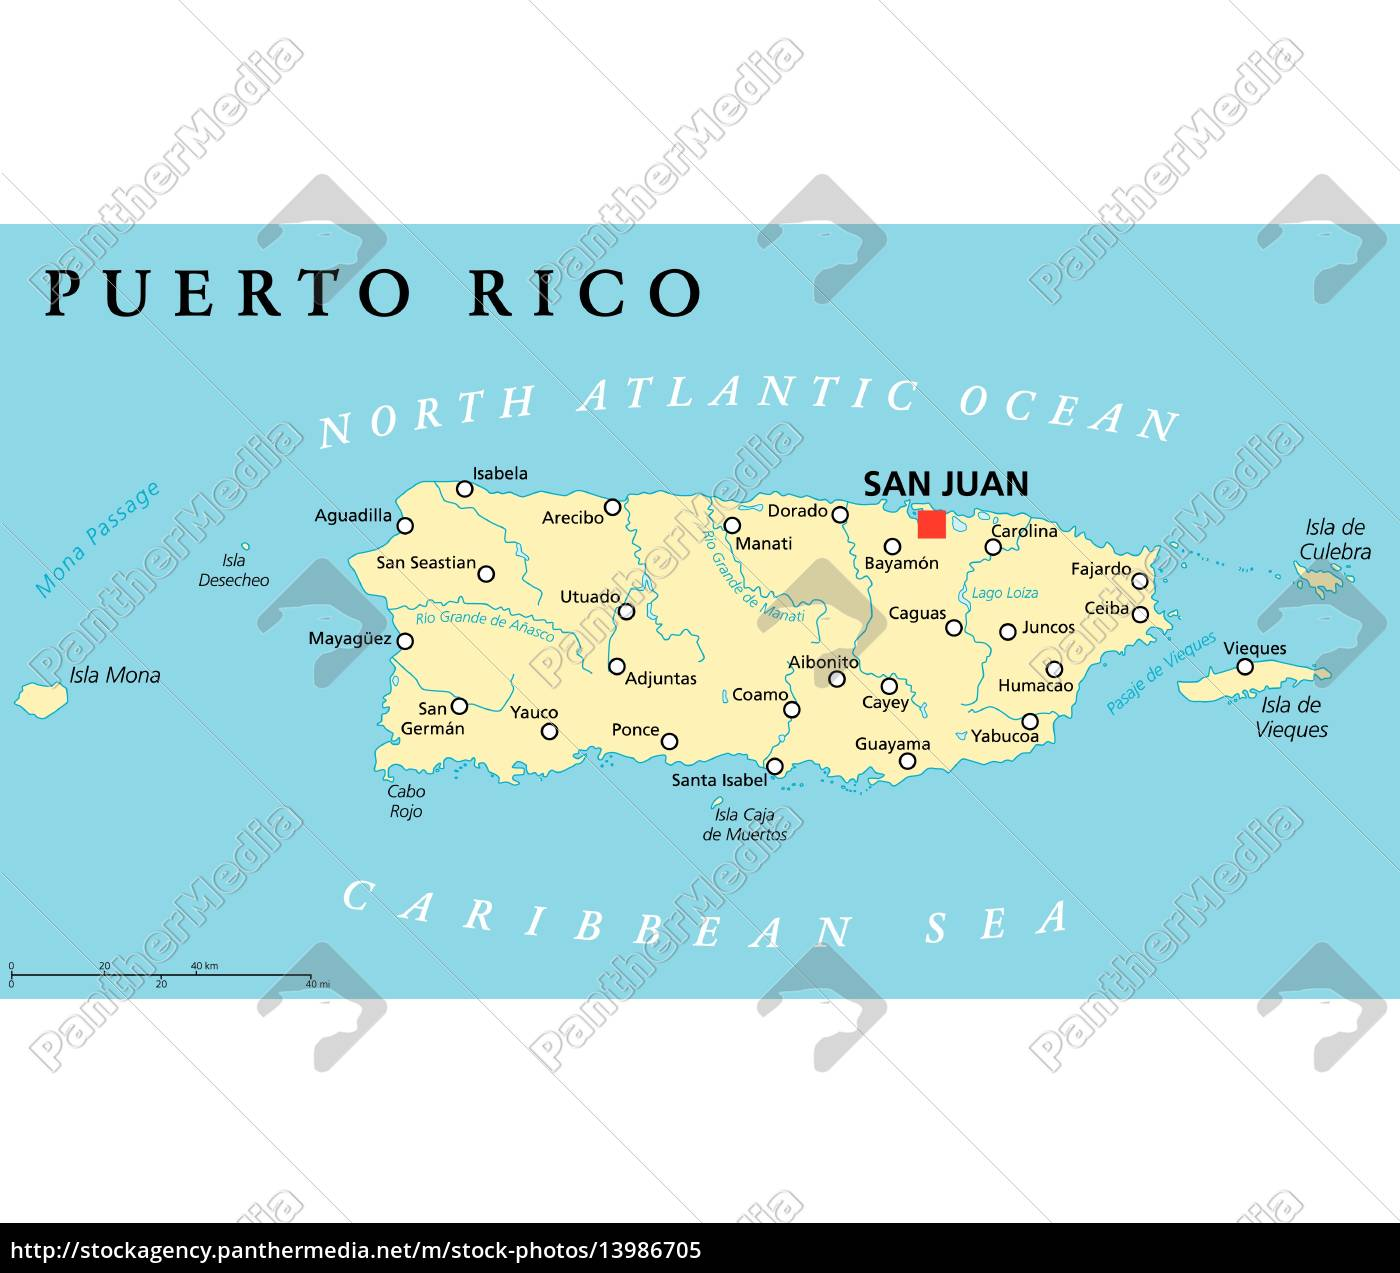 Puerto Rico Political Map Royalty Free Image 13986705